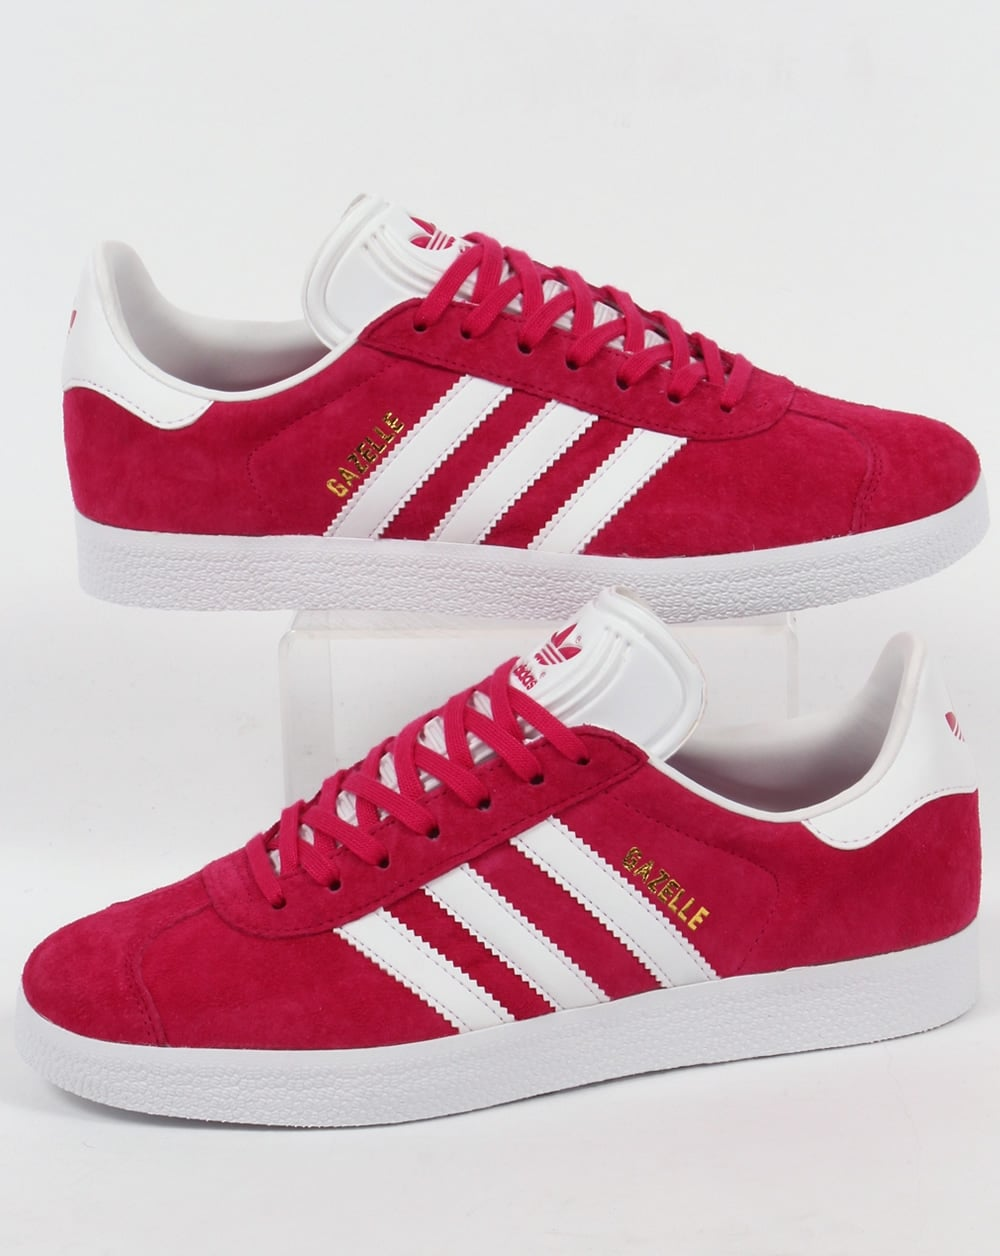 adidas Trainers Adidas Gazelle Trainers Bold Pink White 3312a1178